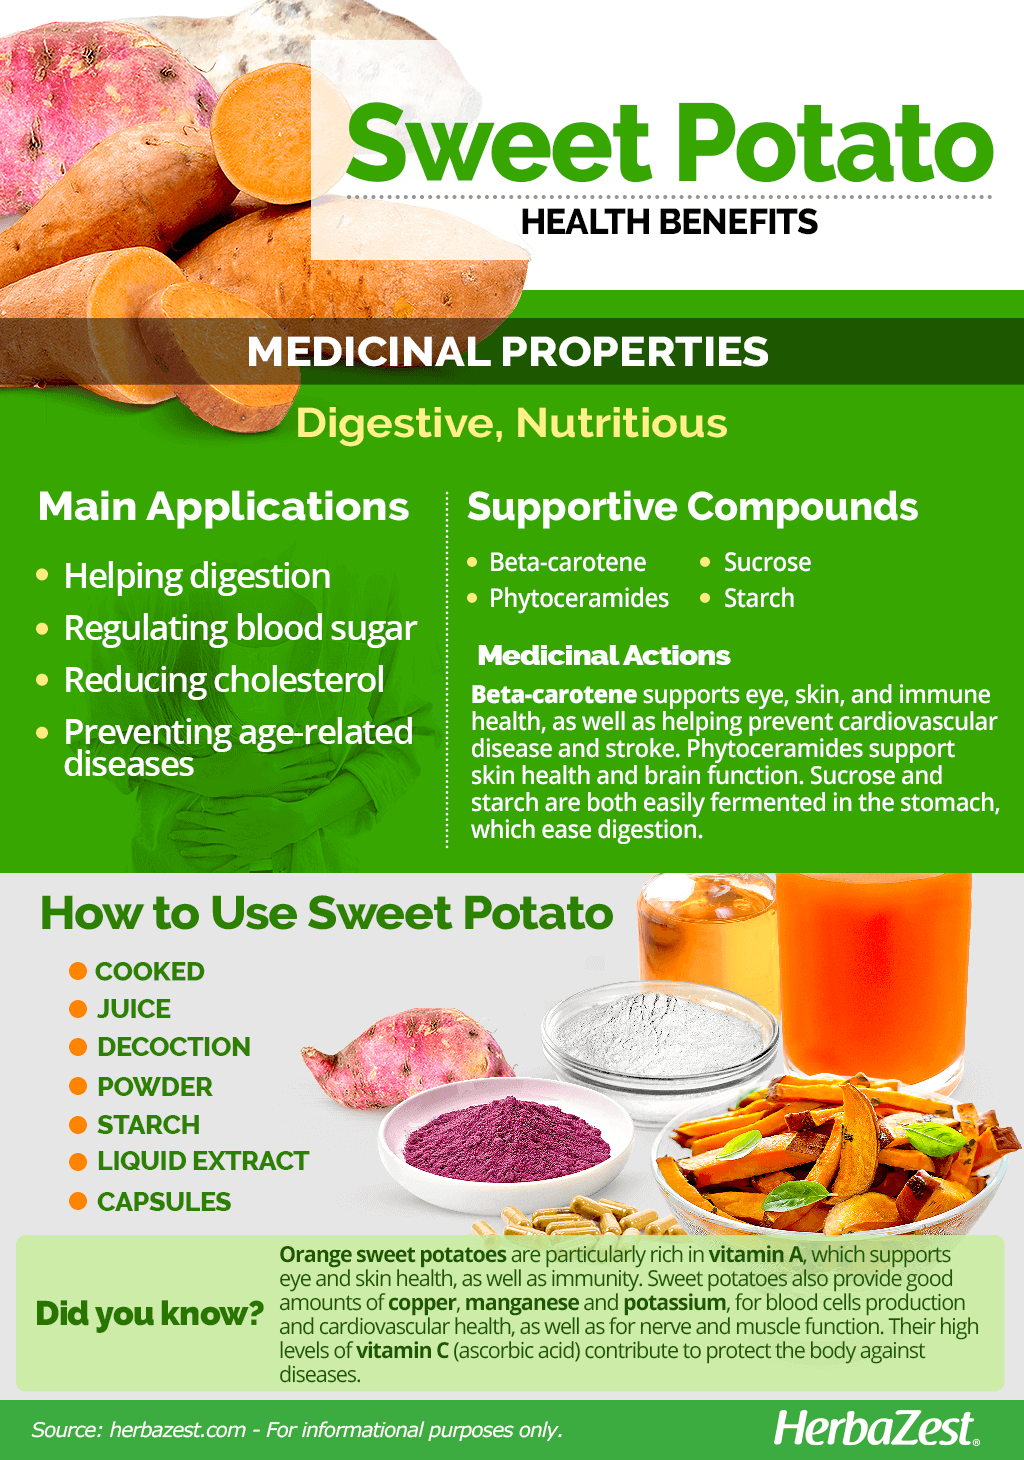 All About Sweet Potato